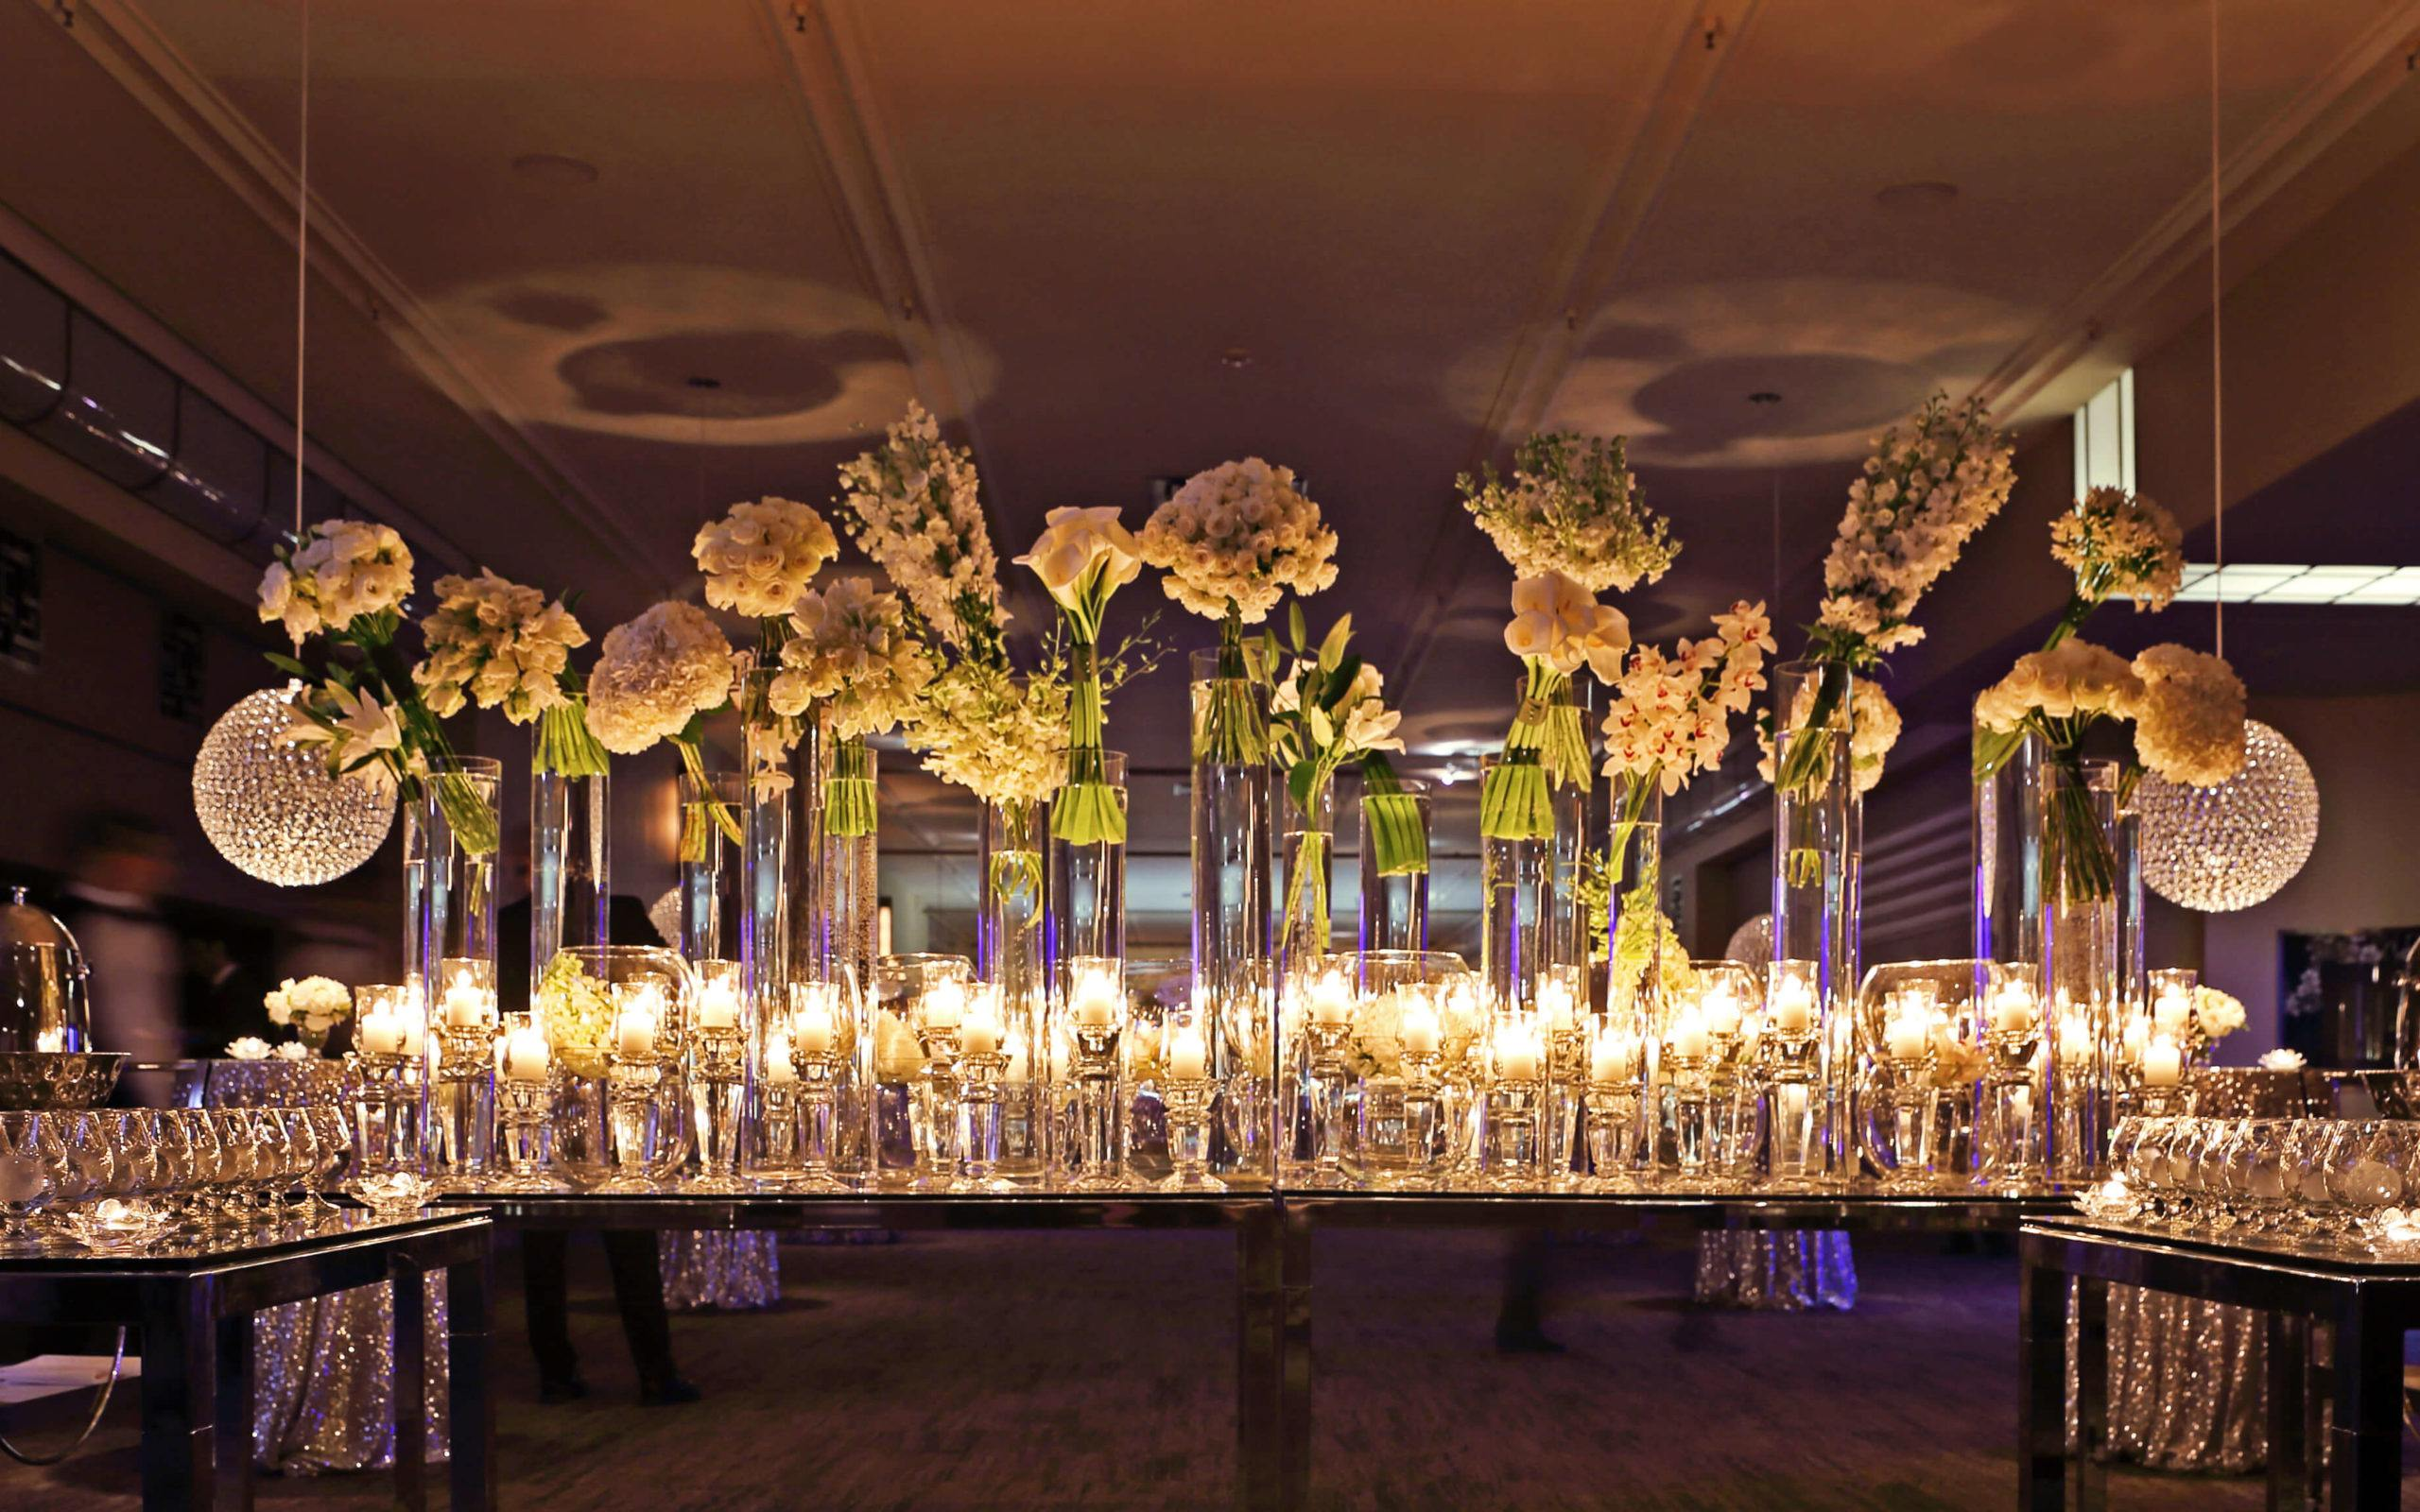 glasswares and lit candles set up along the tables in the lobby at The Carlu